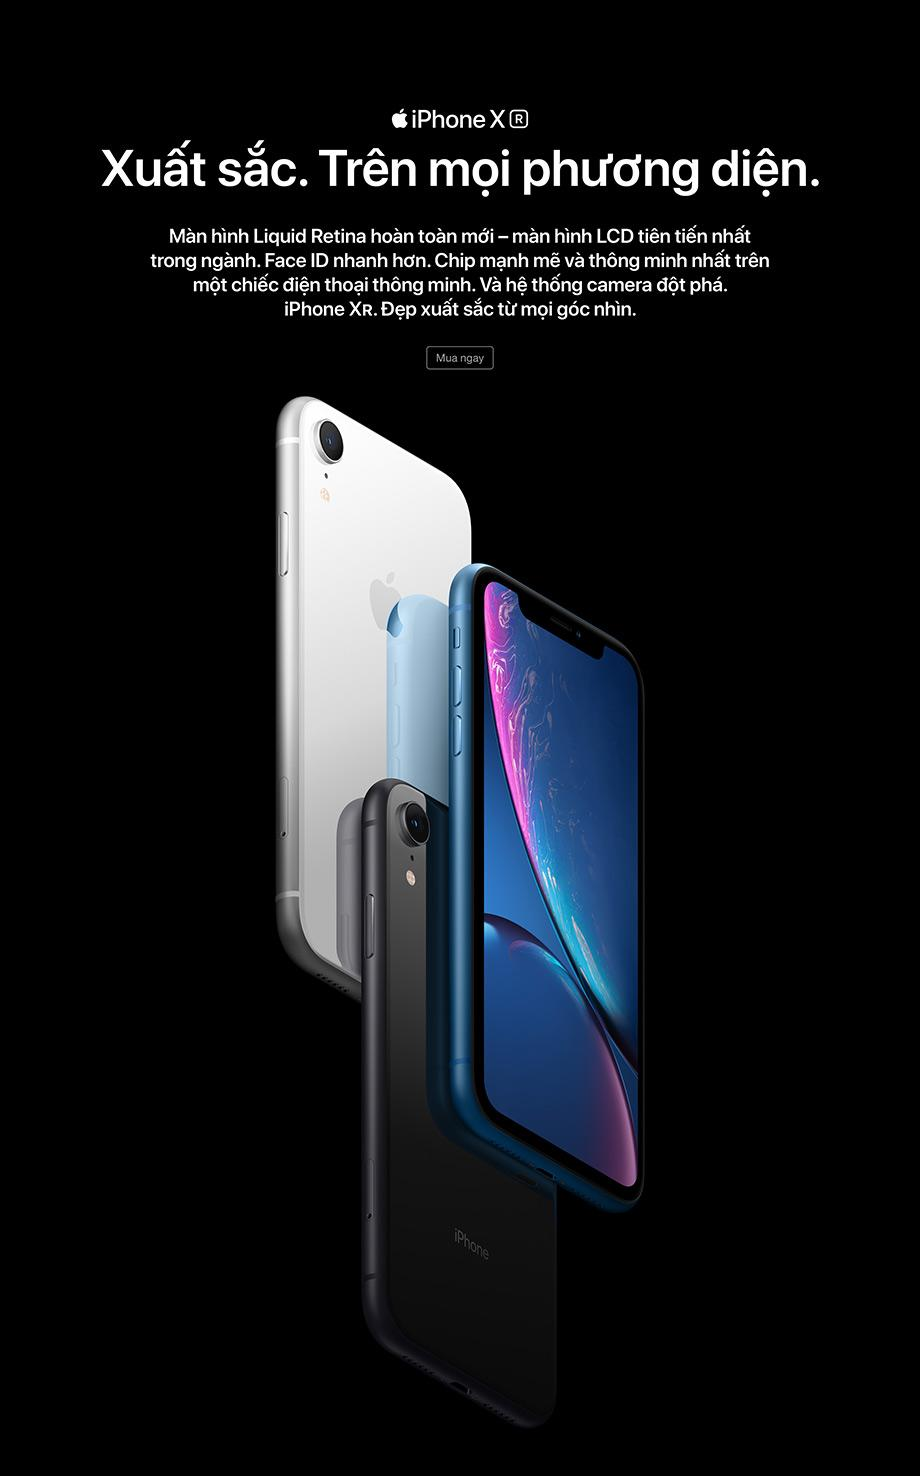 iPhone-XR-product-page_01.jpg